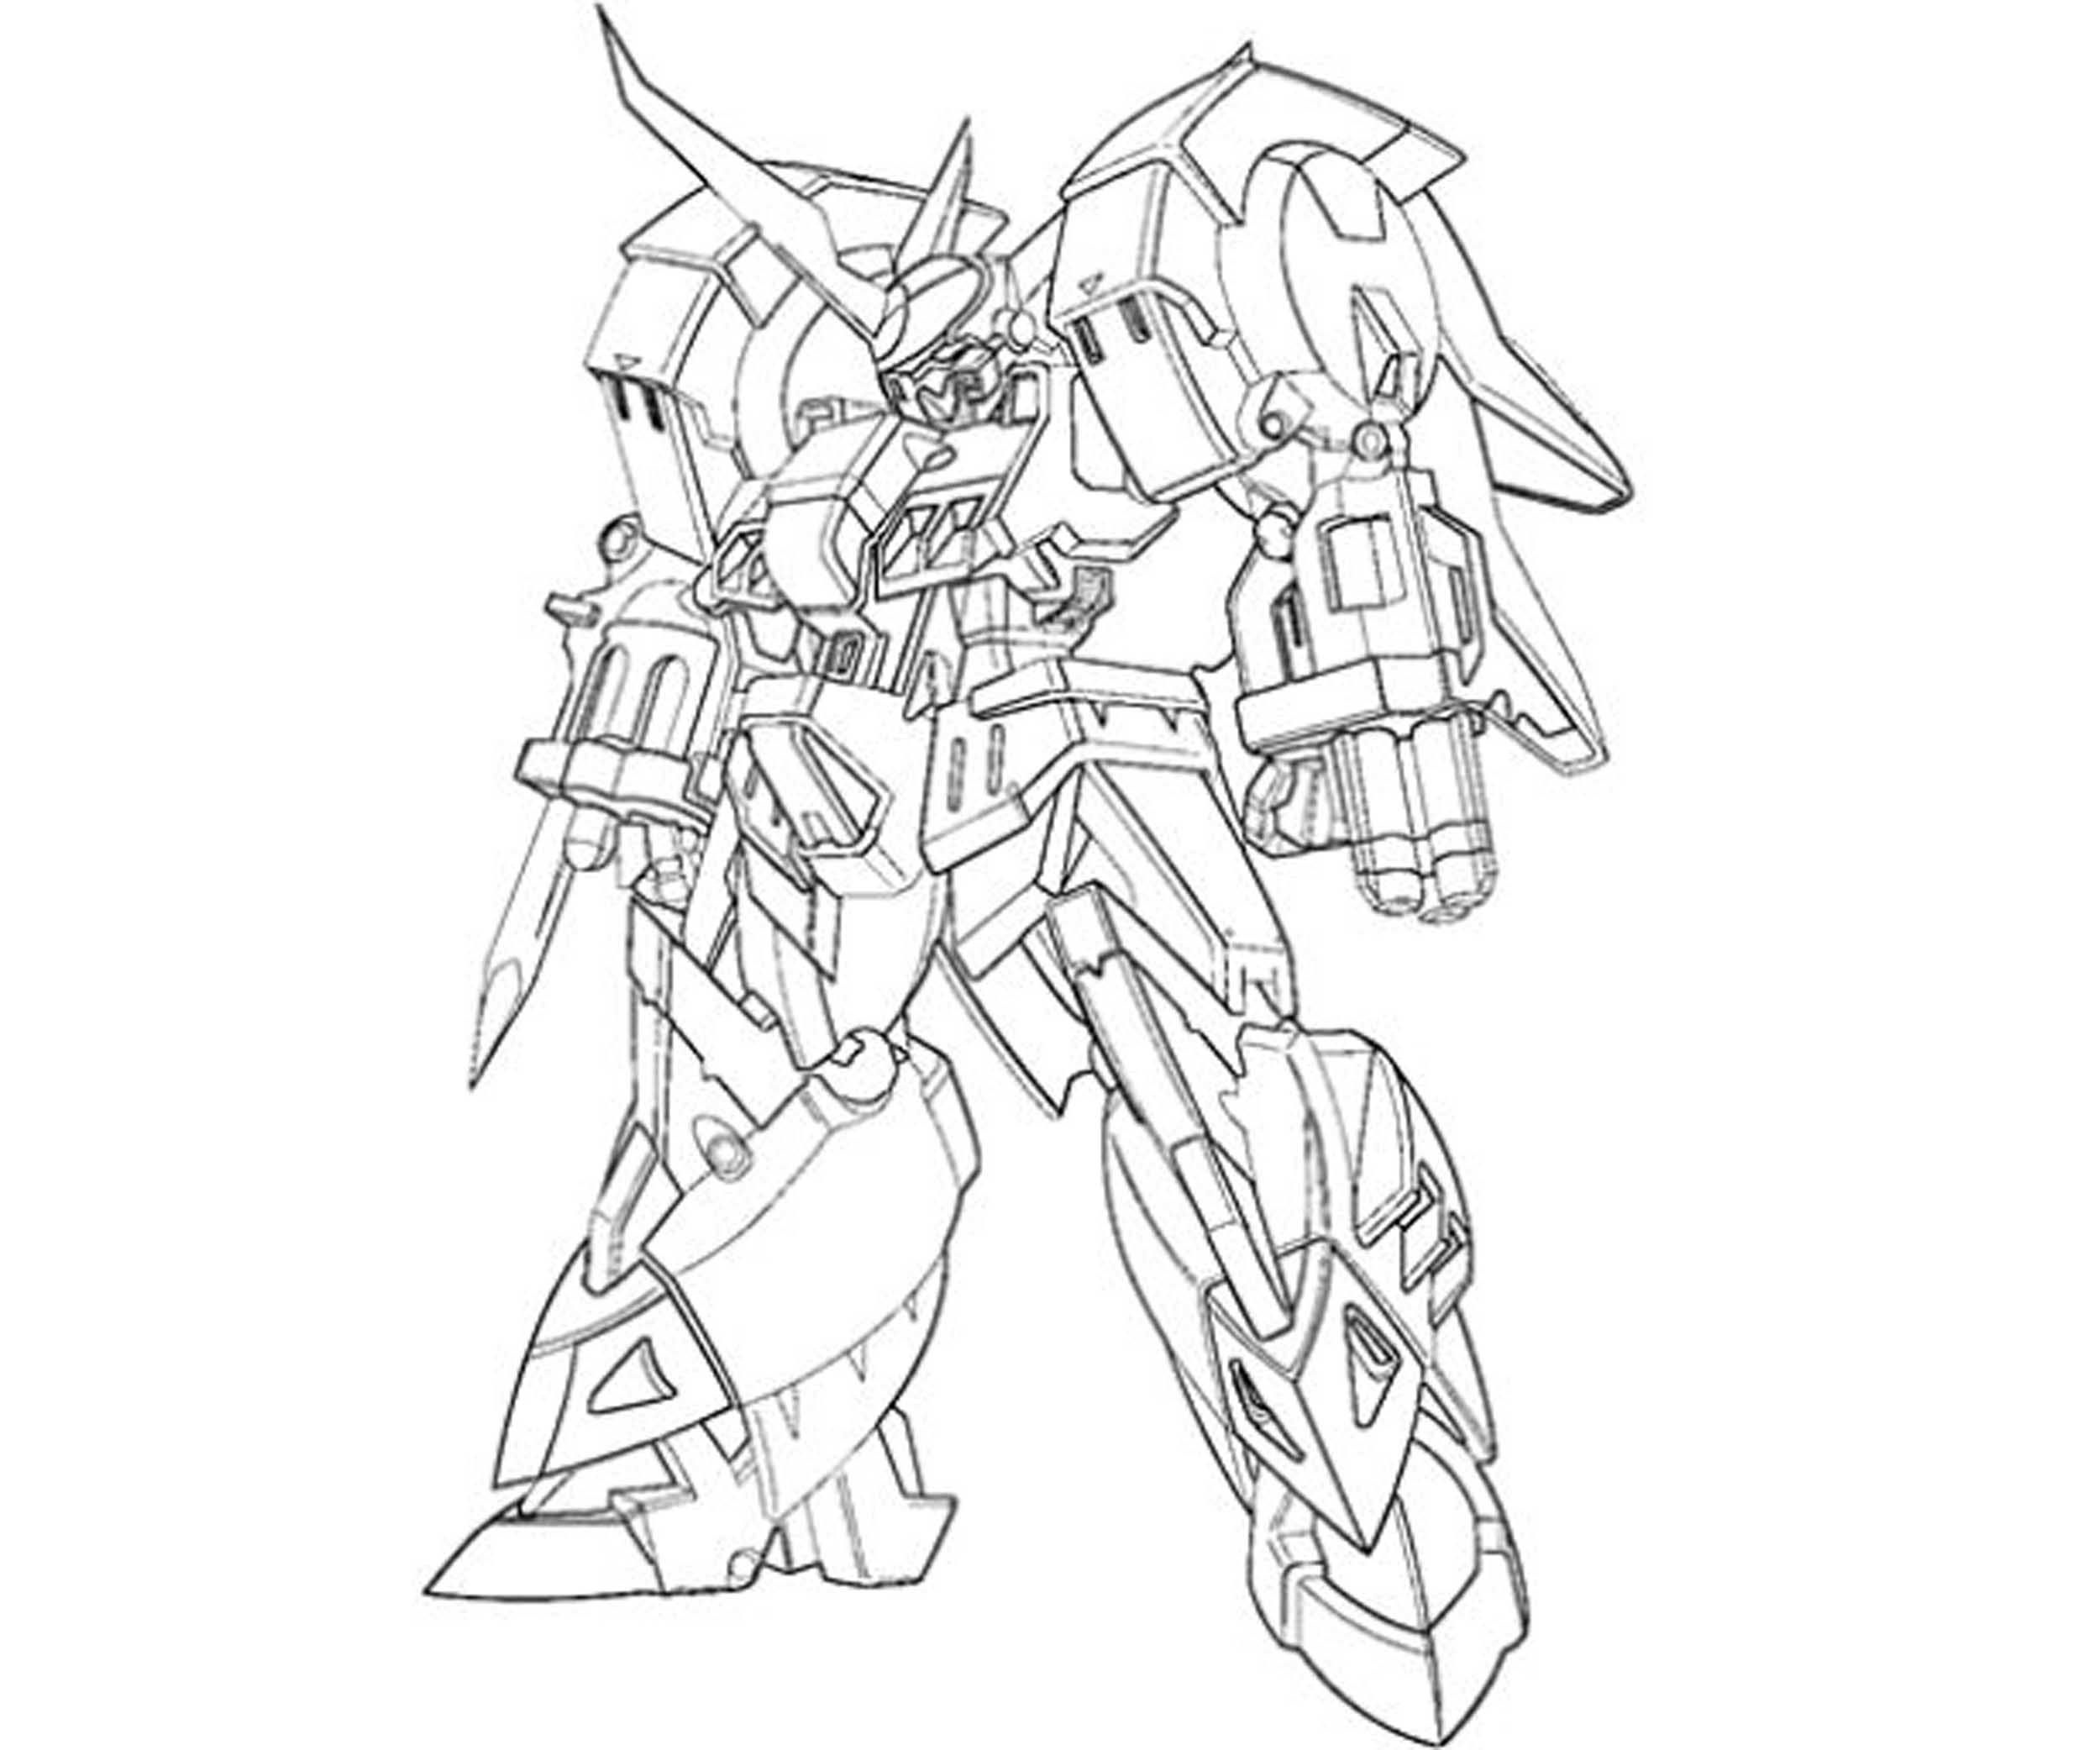 transformers drawing at getdrawings free for personal use Wreck-It Ralph Coloring Pages 2500x2083 new transformer pictures to color 33